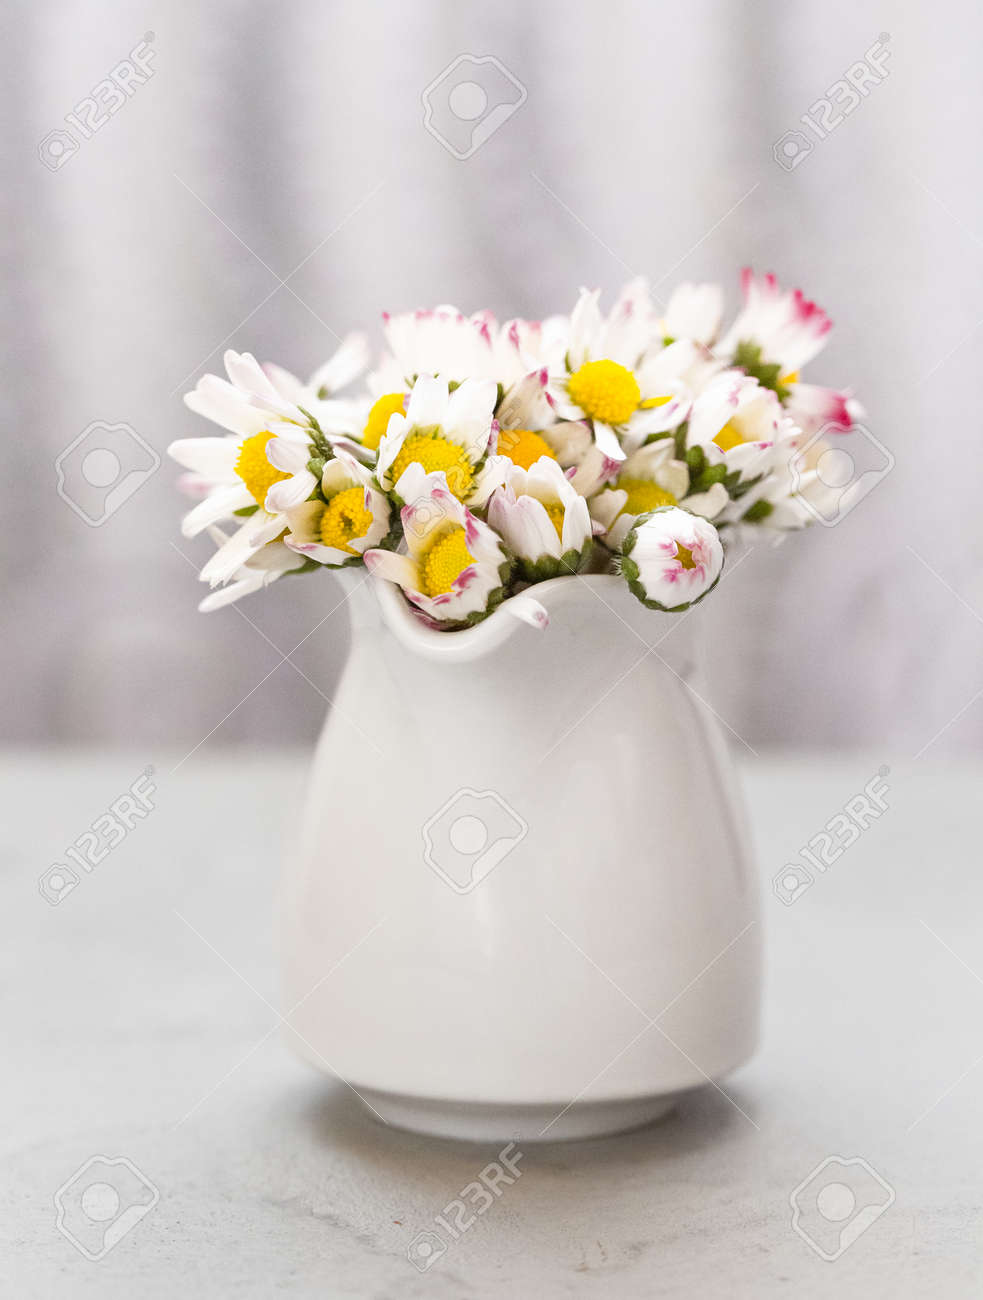 Beautiful daisy flowers in ceramic white vase on ultimate gray - 165777444